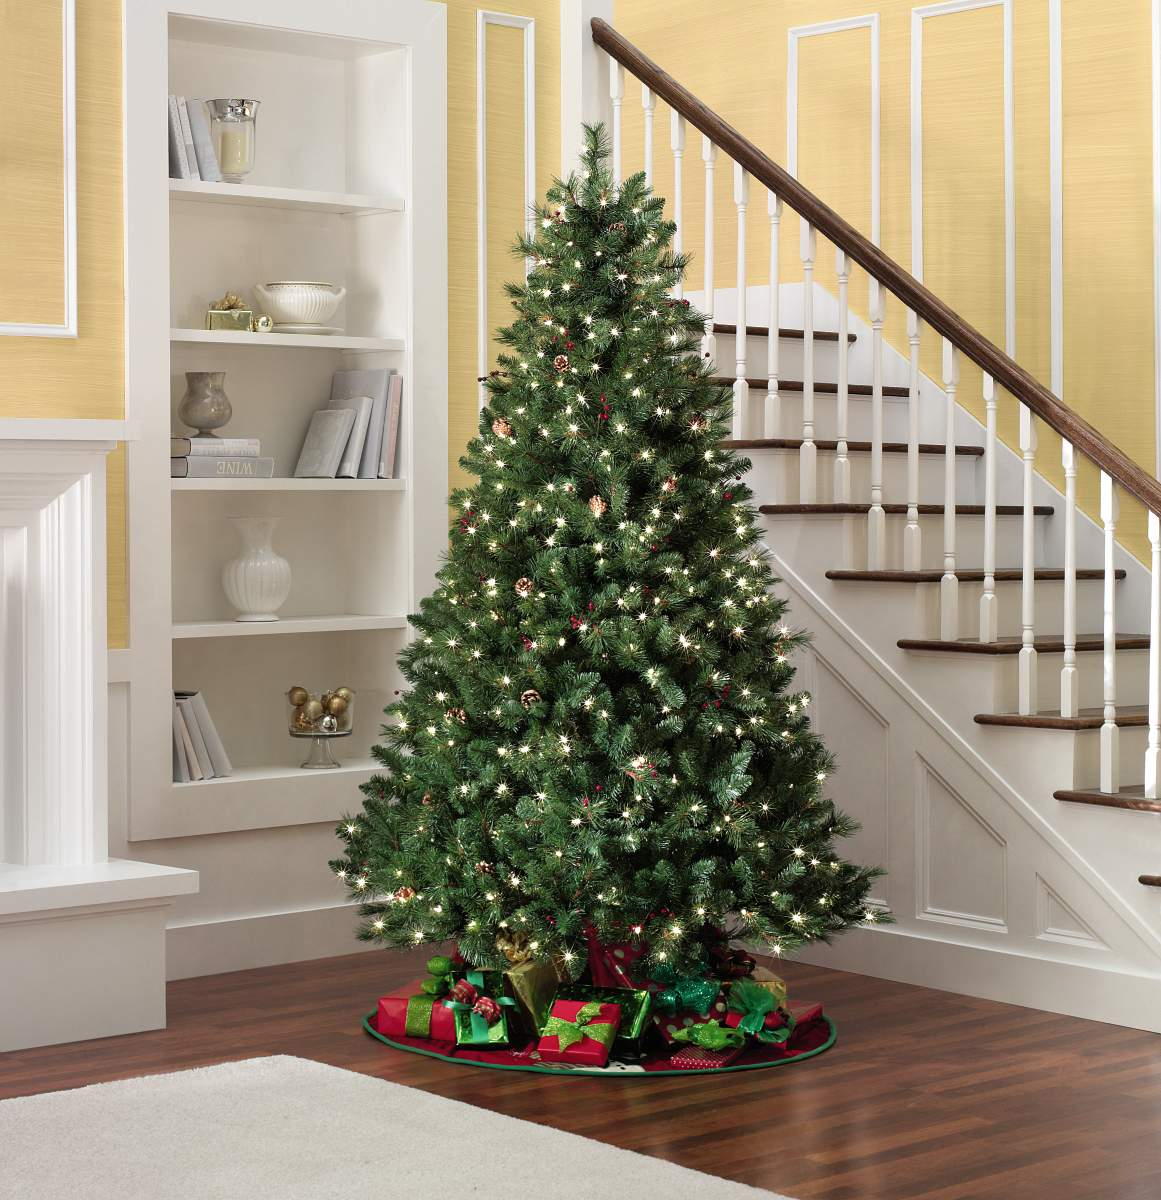 4-5-Pre-lit-Kensington-Pine-Christmas-Tree